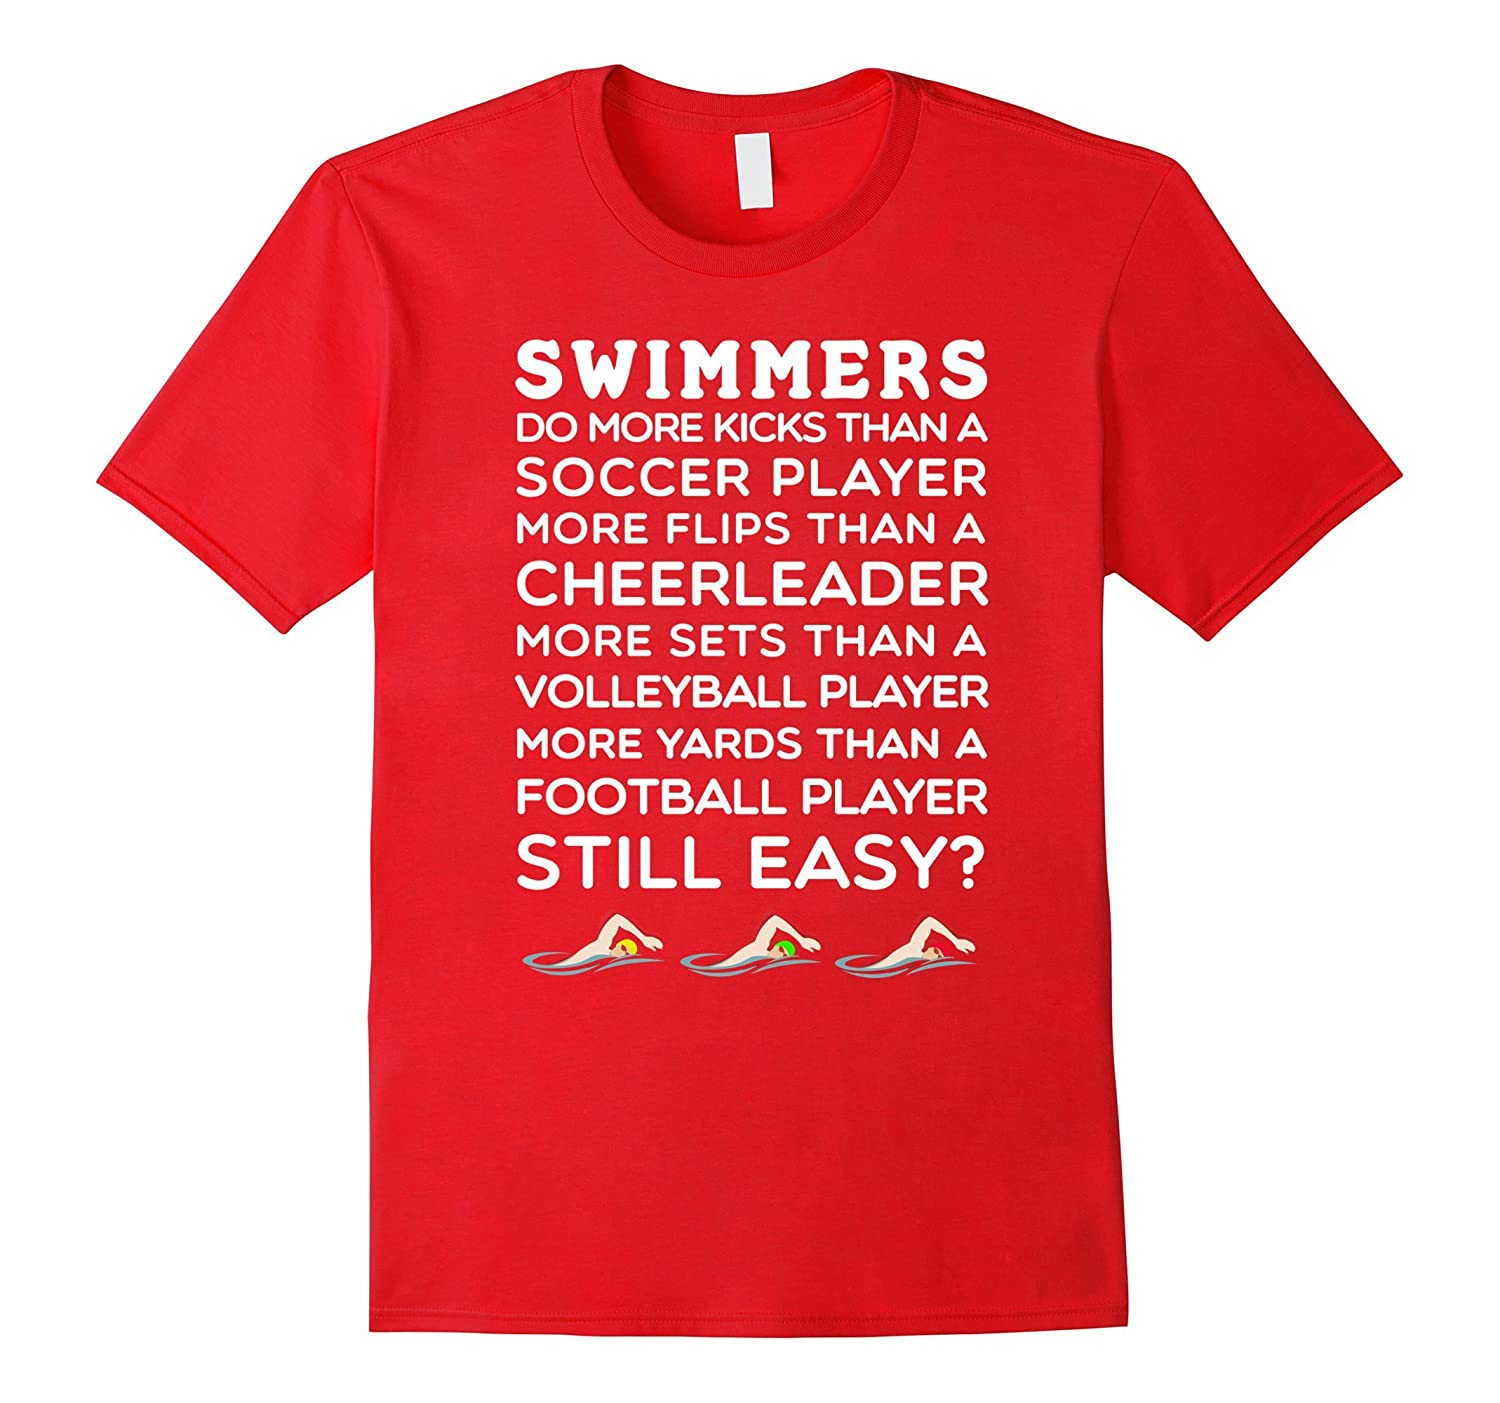 714cc754 Amazon.com: Still Think Swimming is Easy? Swim Team T-Shirt - White Lett:  Clothing